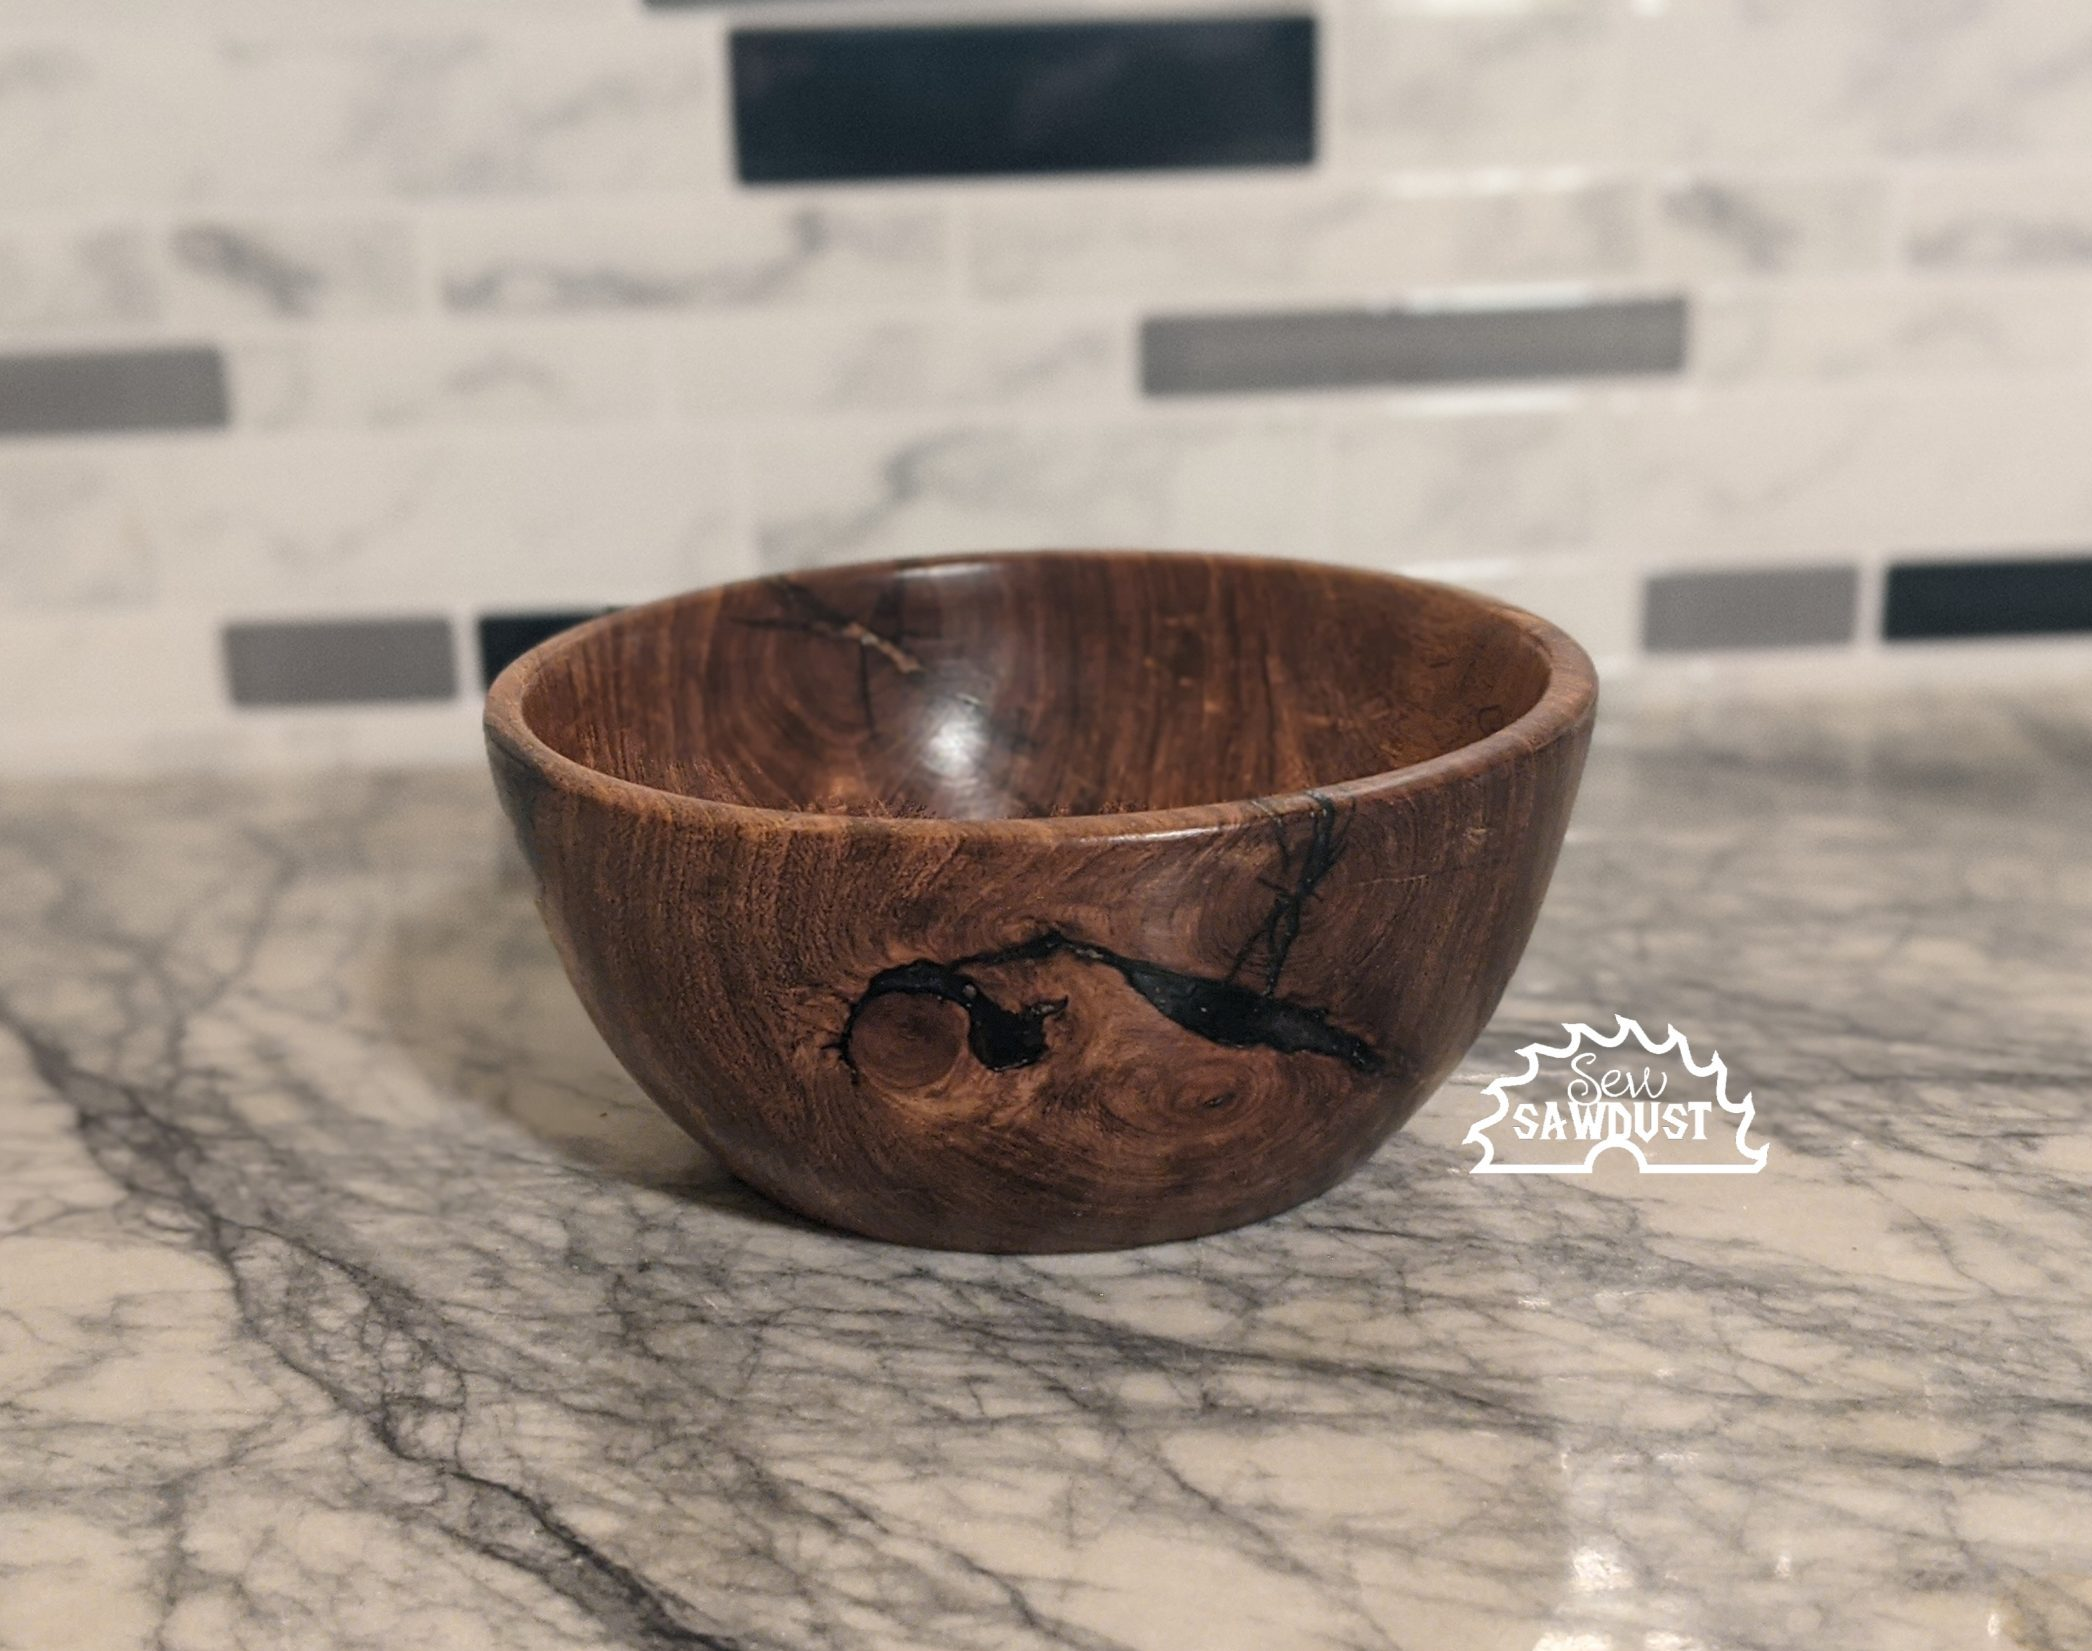 sew sawdust makes a bowl using mesquite wood